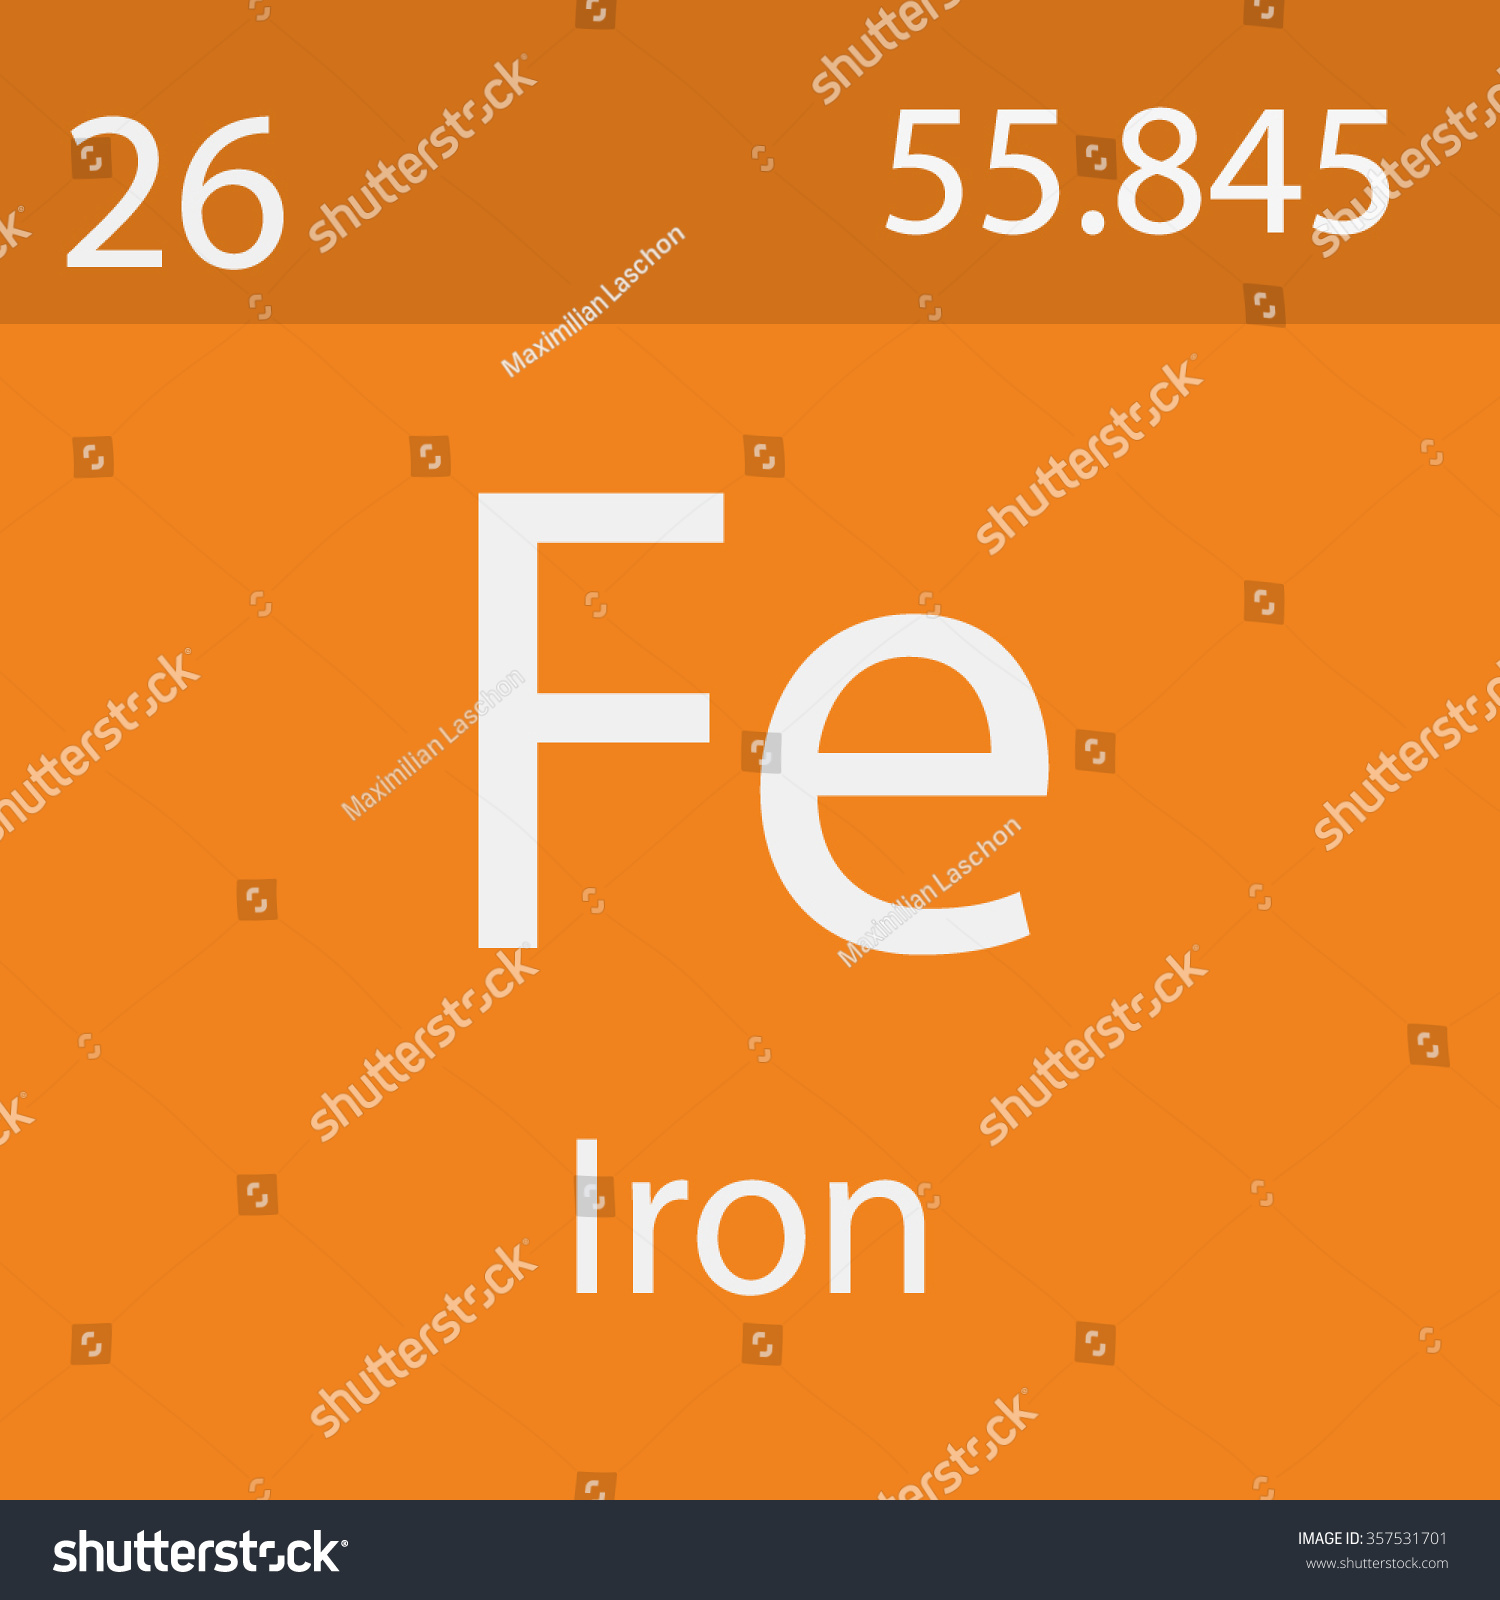 Iron chemical symbol stock vector 357531701 shutterstock iron chemical symbol gamestrikefo Image collections